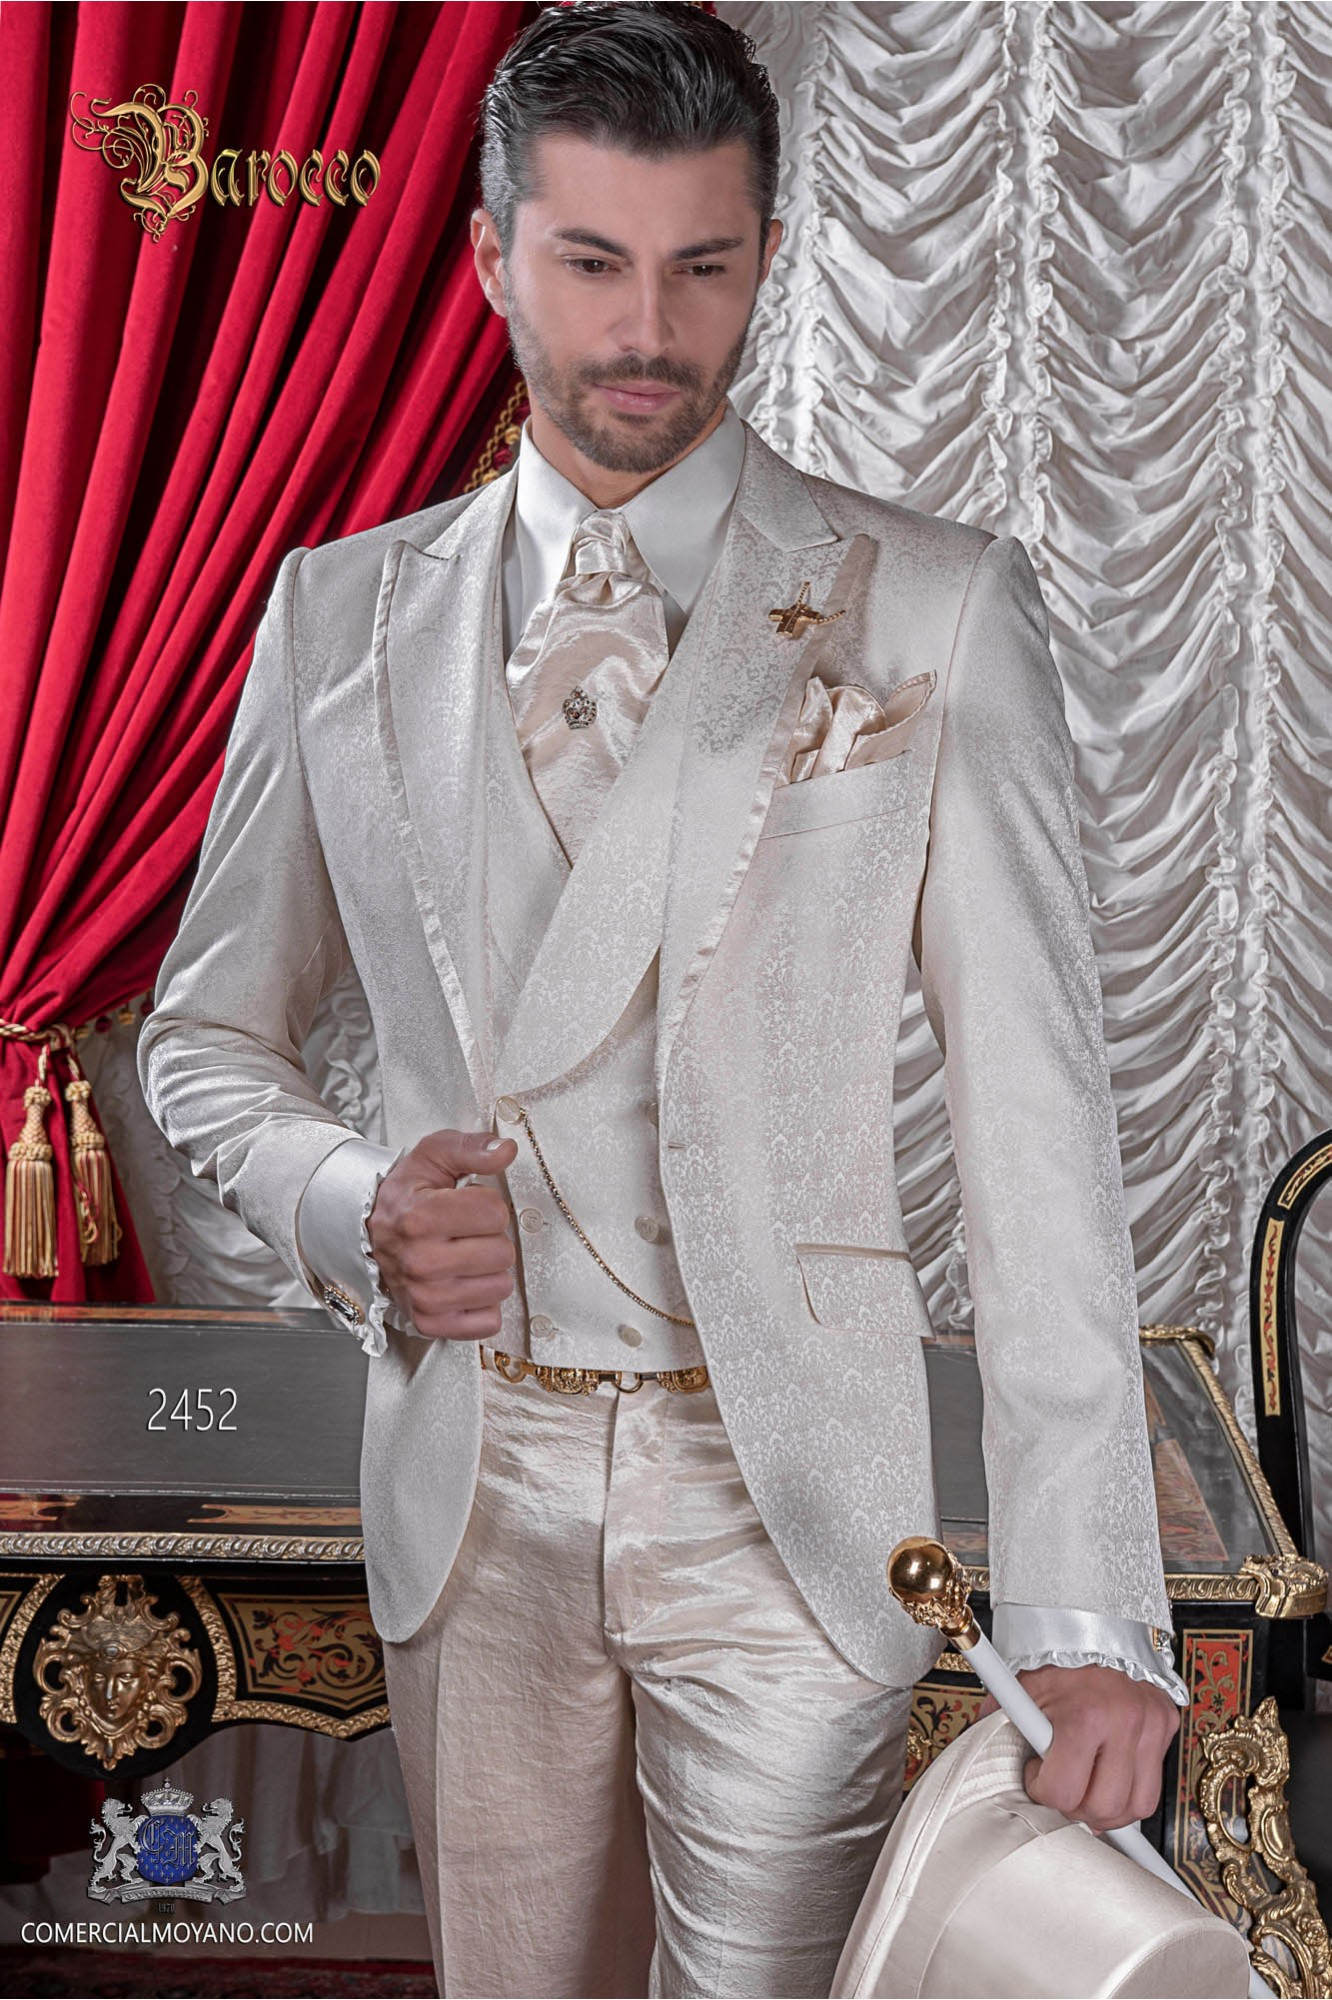 Italian bespoke with a special jacquard fabric in ivory suit